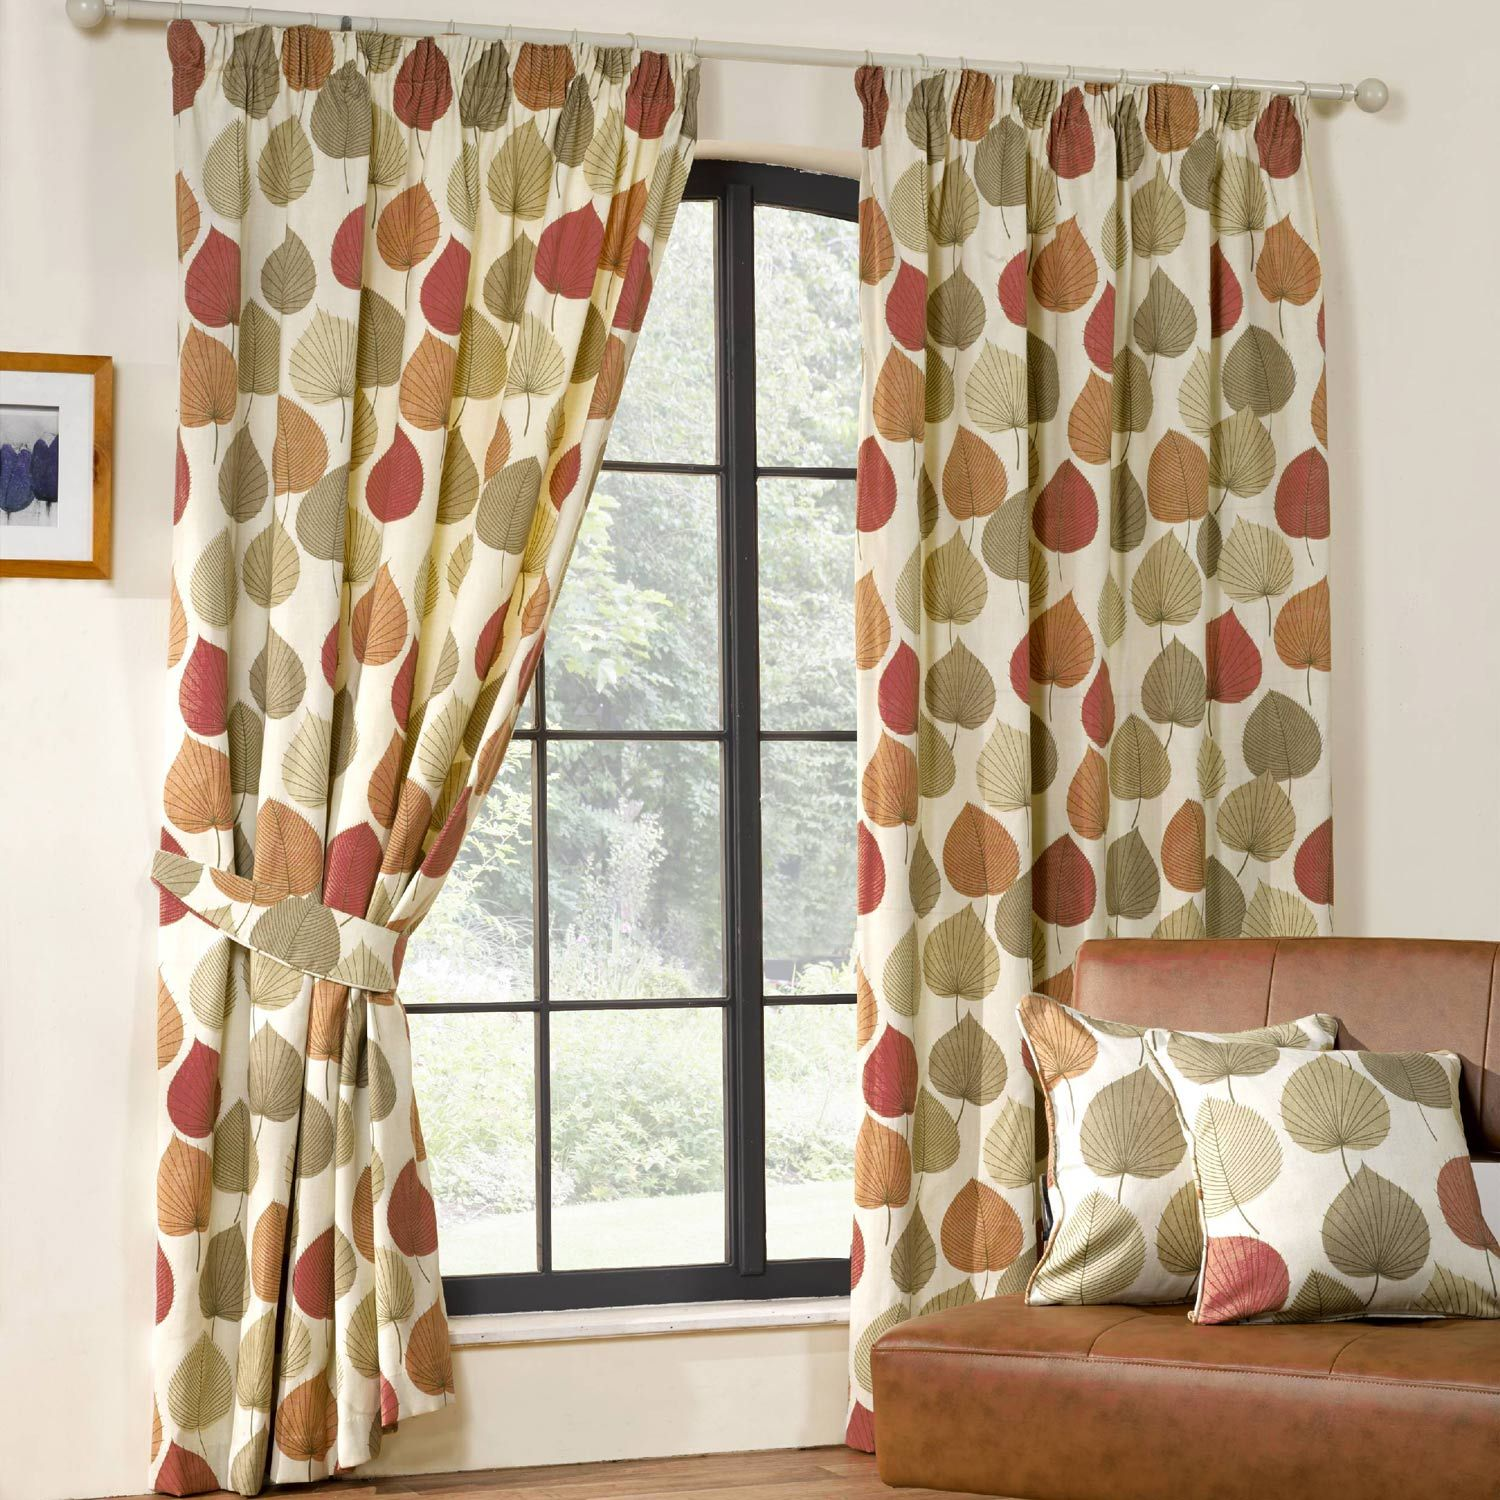 Inglewood Modern Leaf Print Curtains   Terracotta From £20